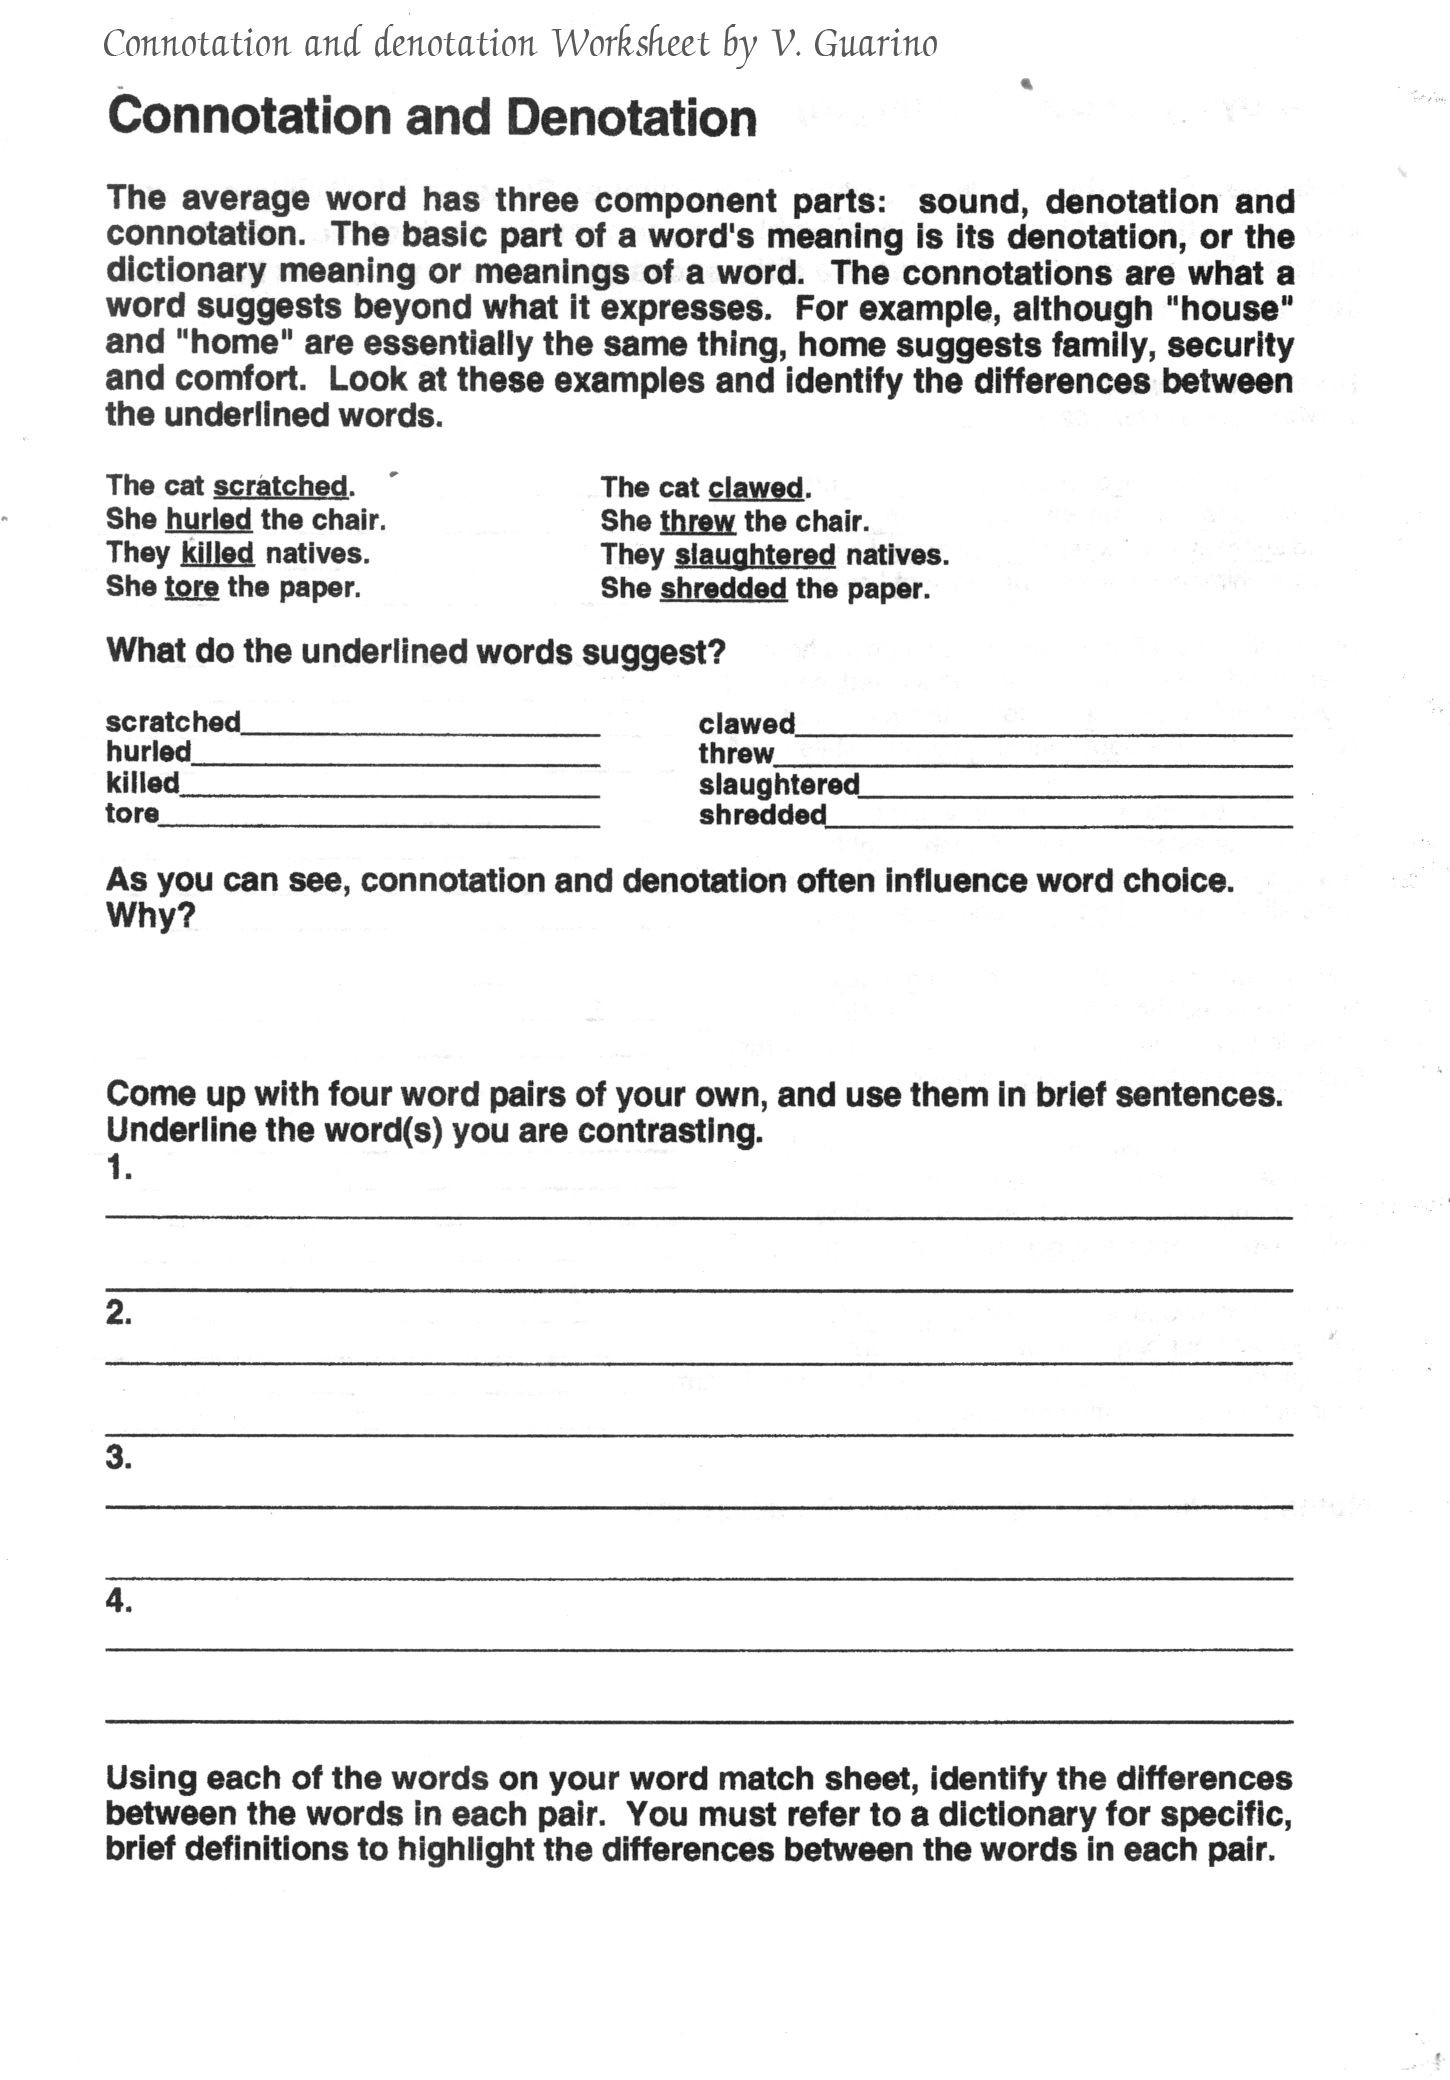 Dictionary Skills Worksheets Middle School Connotation and Denotation Worksheets for Middle School